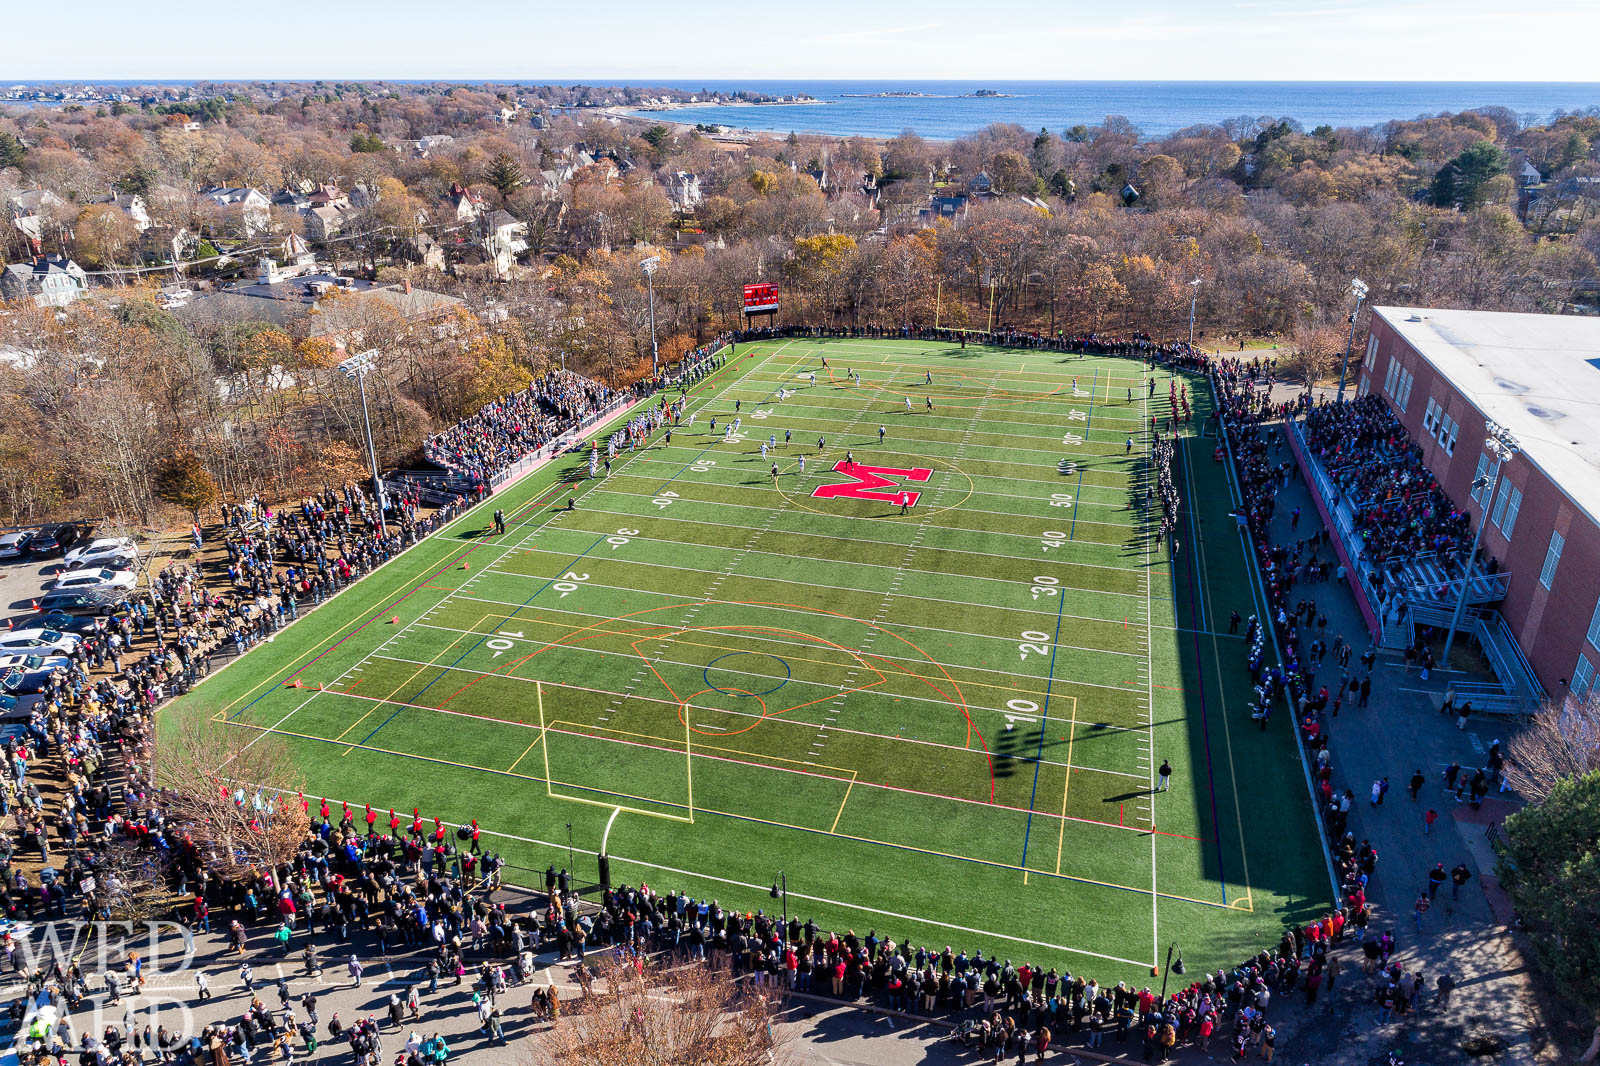 The annual game of Thanksgiving football takes place at Piper field. Marblehead went on to win against Swampscott.